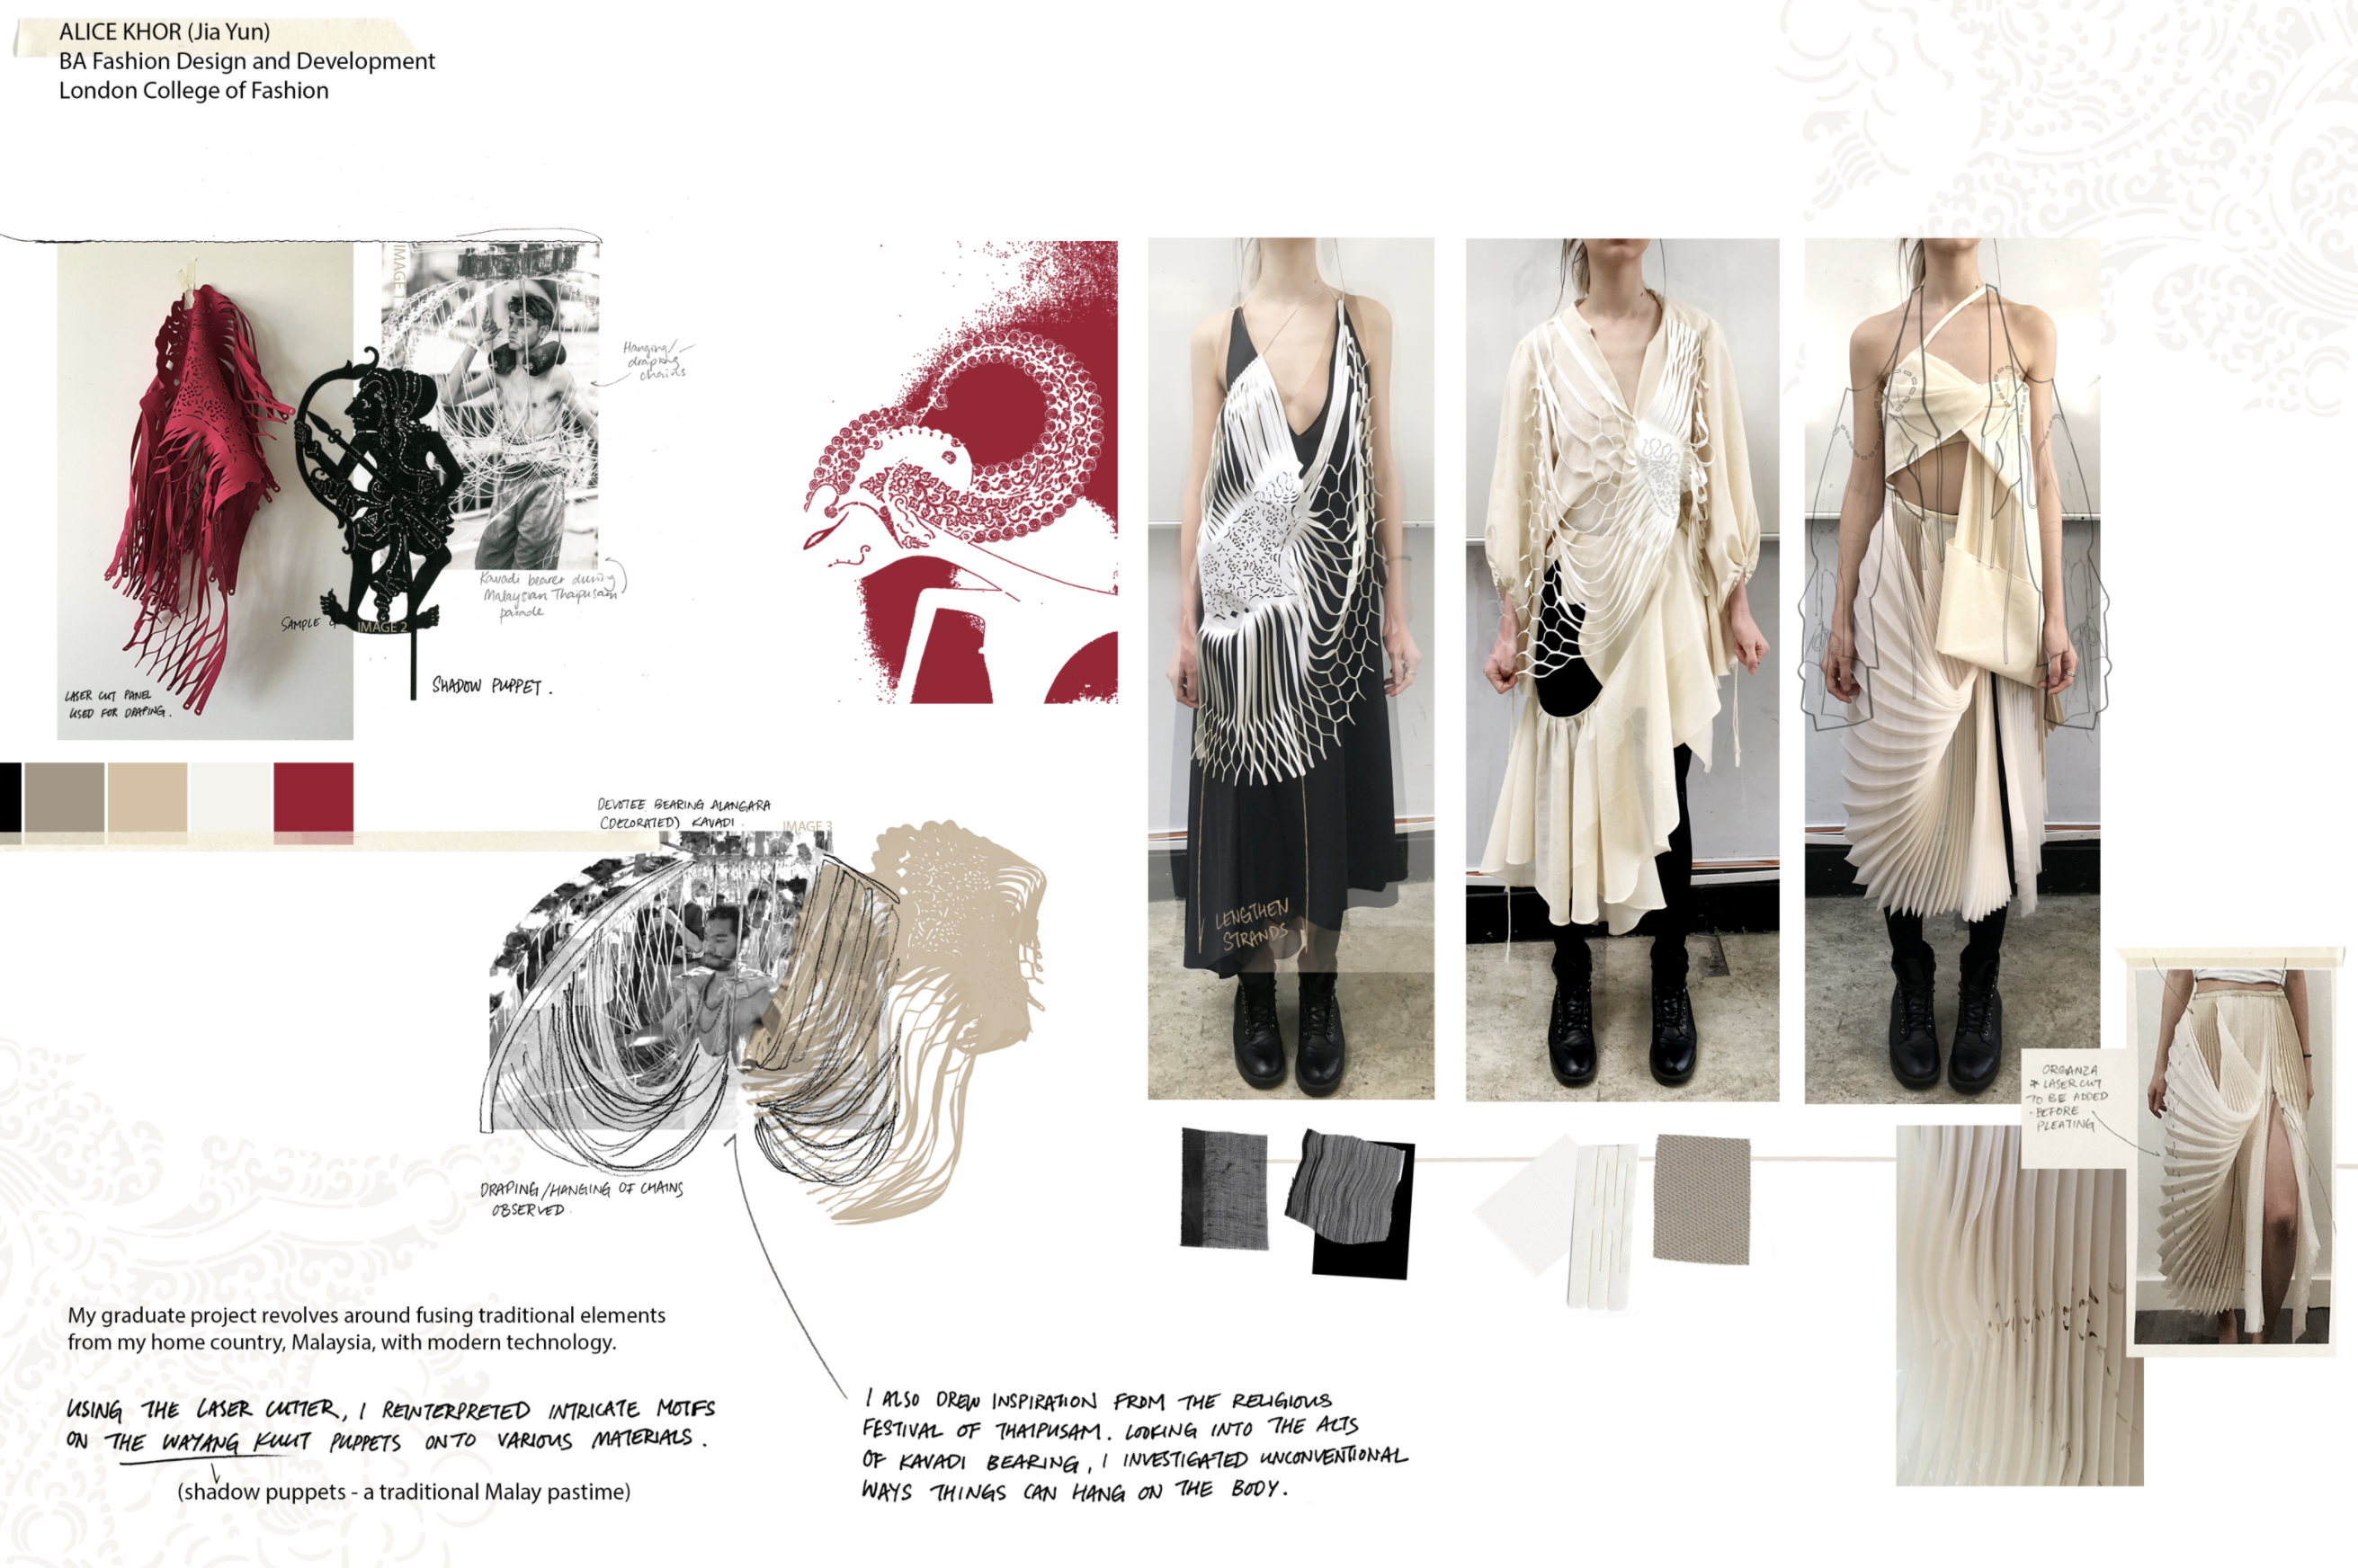 Graduate work of Alice Khor from the BA fashion design and development pathway at London College of Fashion